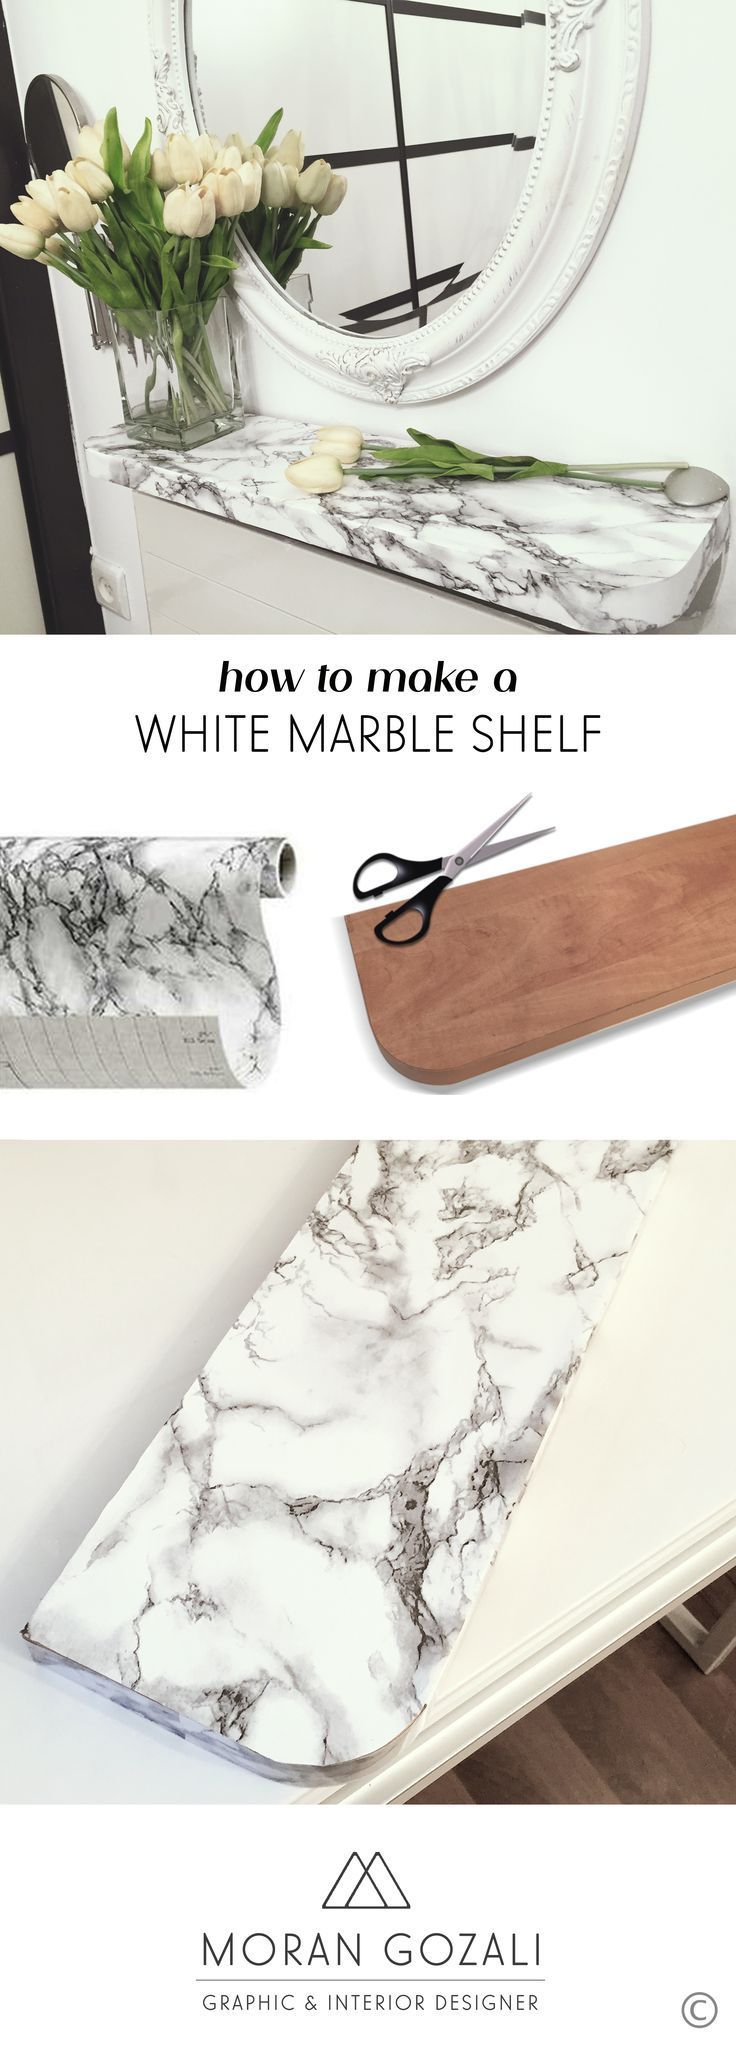 Weekly Tip: Furniture Makeovers with Marble Contact Paper... - centophobe.... - http://centophobe.com/weekly-tip-furniture-makeovers-with-%e2%80%8emarble%e2%80%ac-contact-paper-centophobe/ -  - Visit for more decorating ideas... http://centophobe.com/weekly-tip-furniture-makeovers-with-%e2%80%8emarble%e2%80%ac-contact-paper-centophobe/